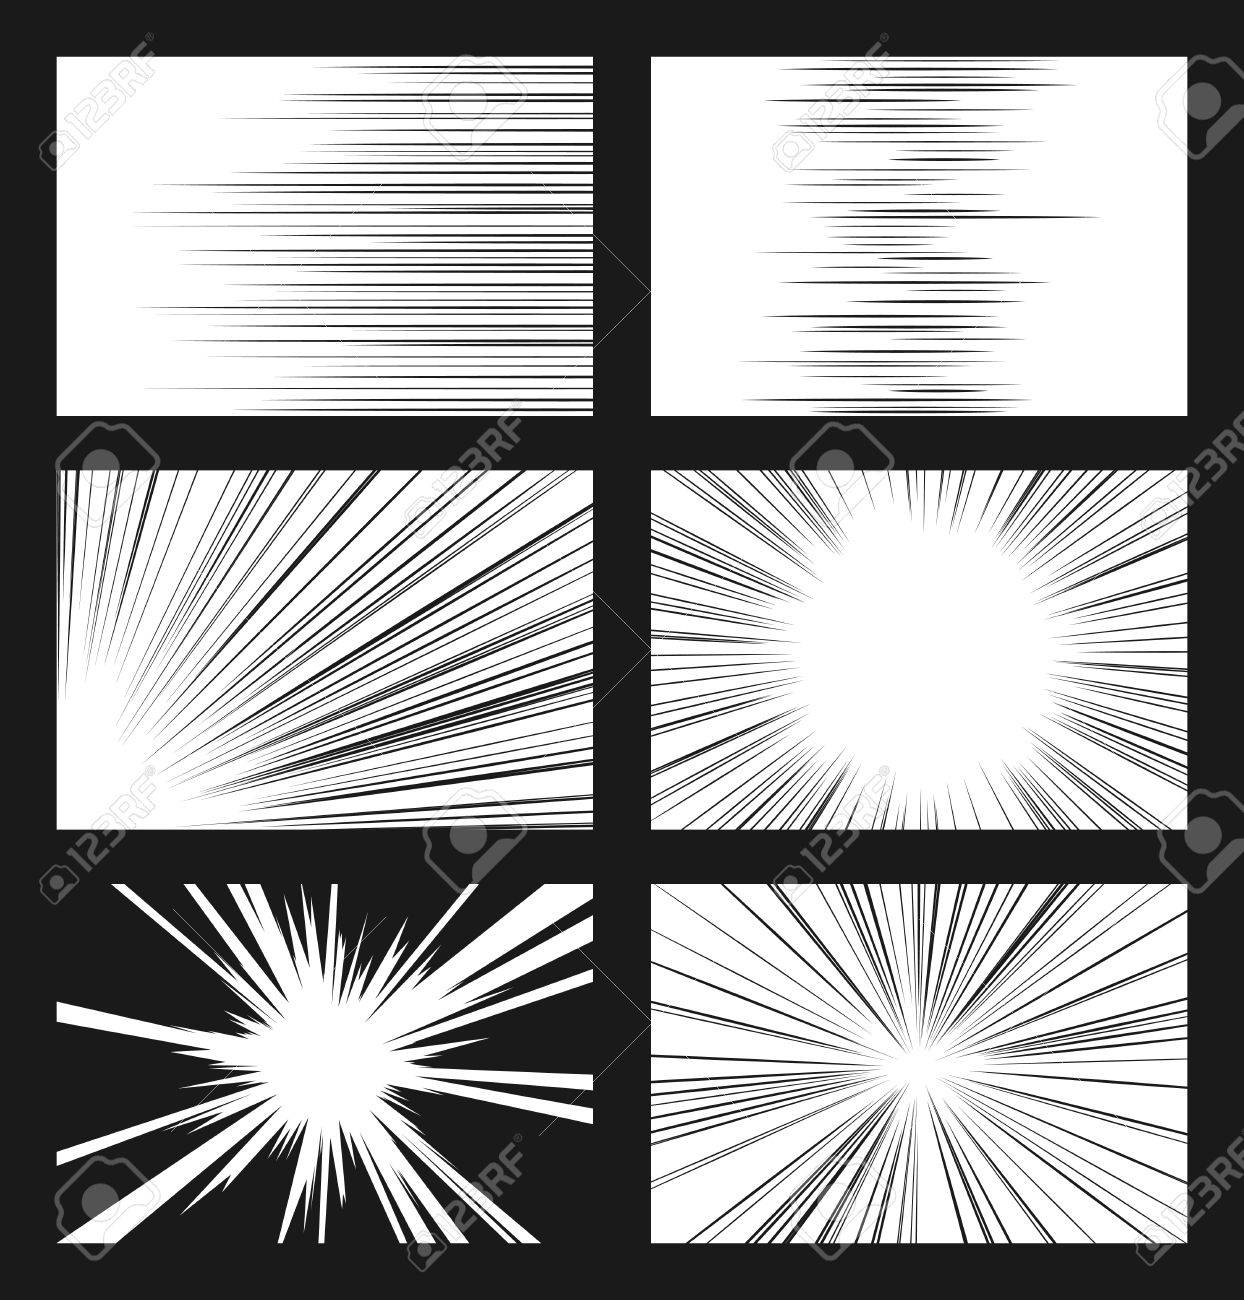 Comic horizontal and radial speed lines vector set. Ray and acceleration, otherworldly visionary illustration - 44685011